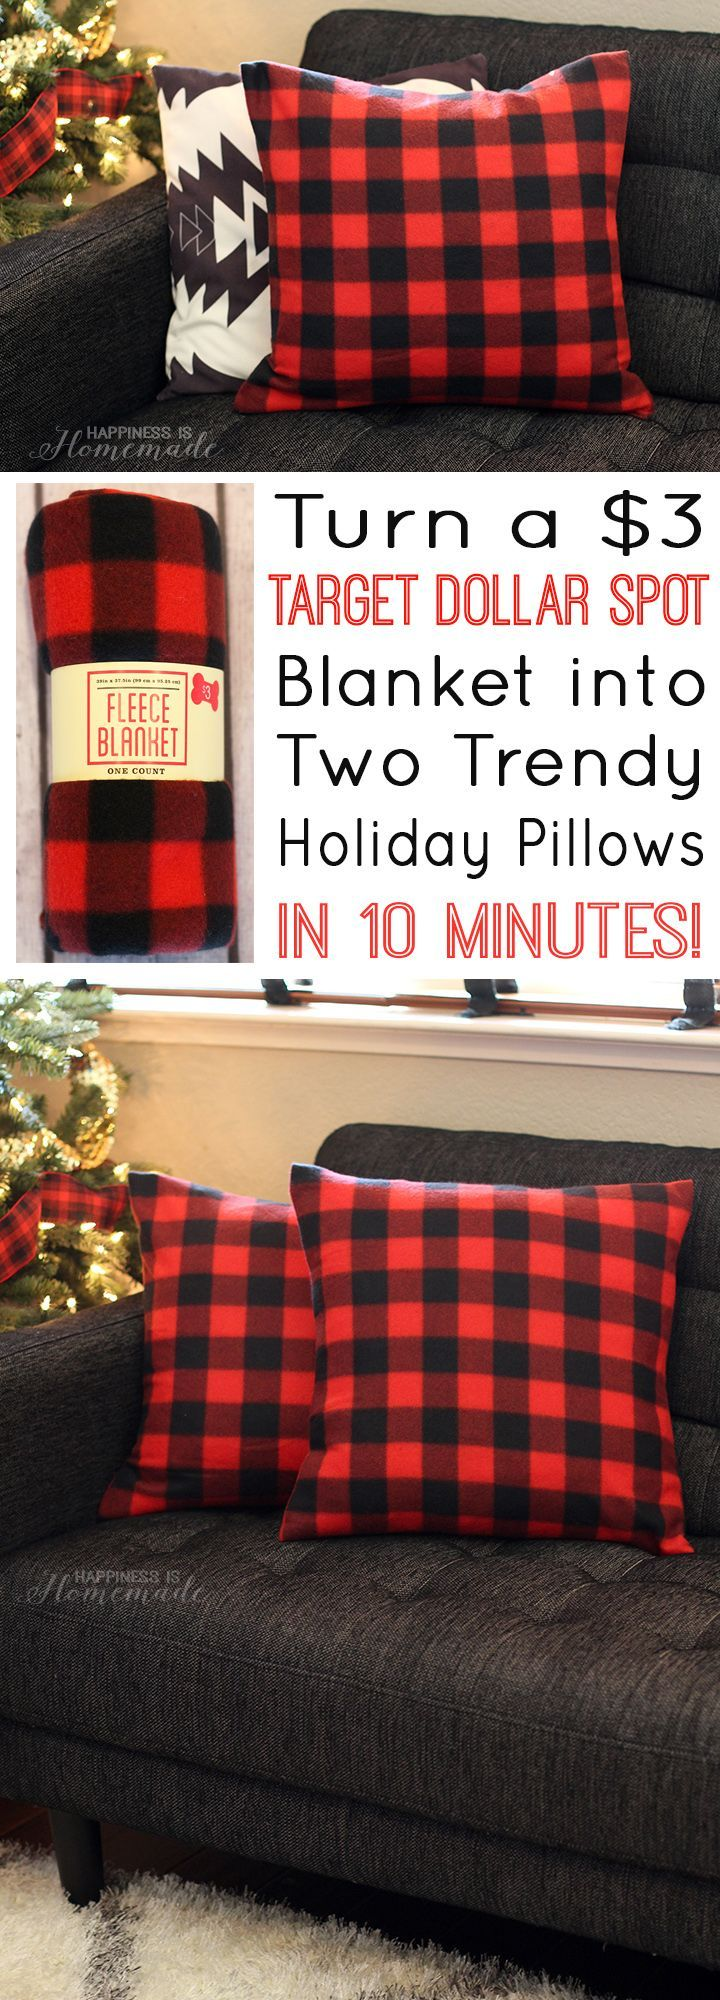 How to Make Holiday Buffalo Check Plaid Pillows from a $3 Target Blanket - Happiness is Homemade